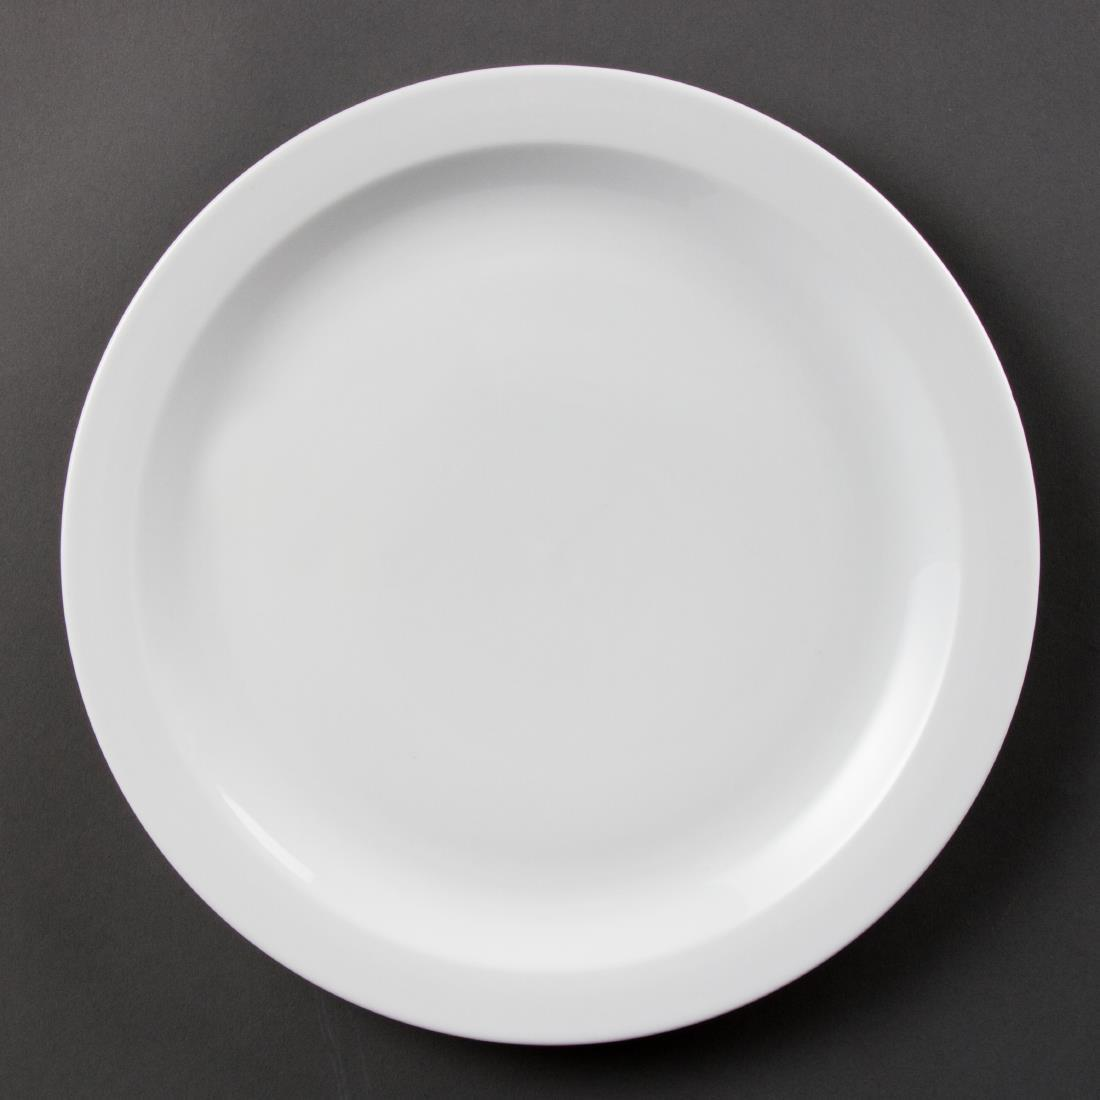 Olympia Whiteware Narrow Rimmed Plates 280mm